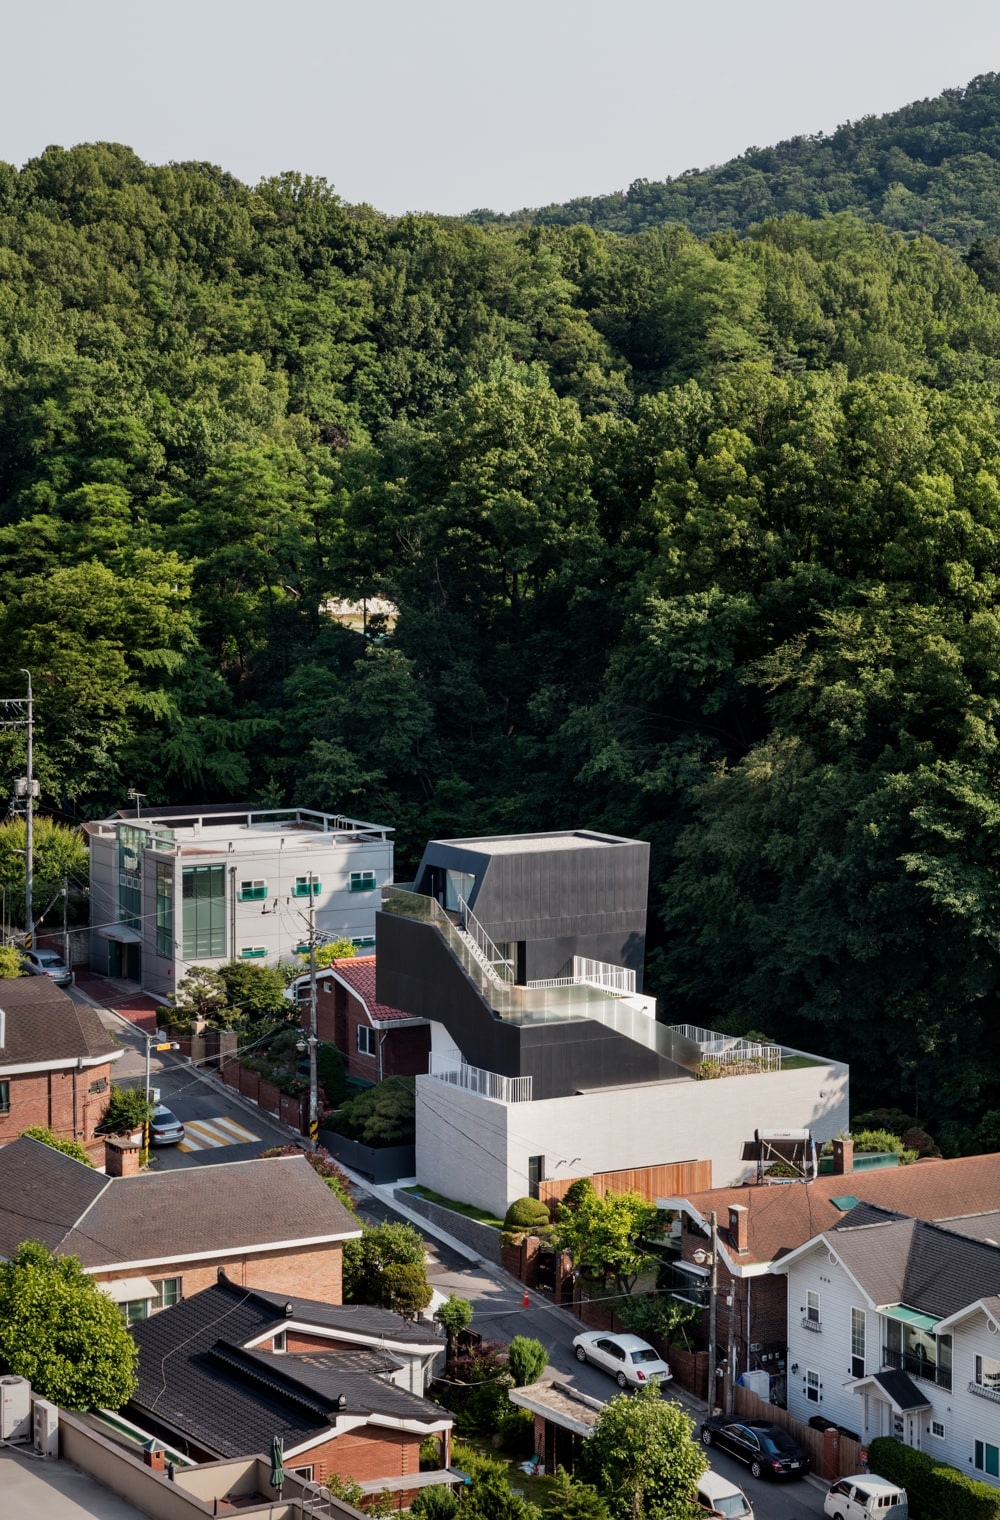 This is an aerial view of the house showcasing how it stands out against the surrounding houses and landscape.